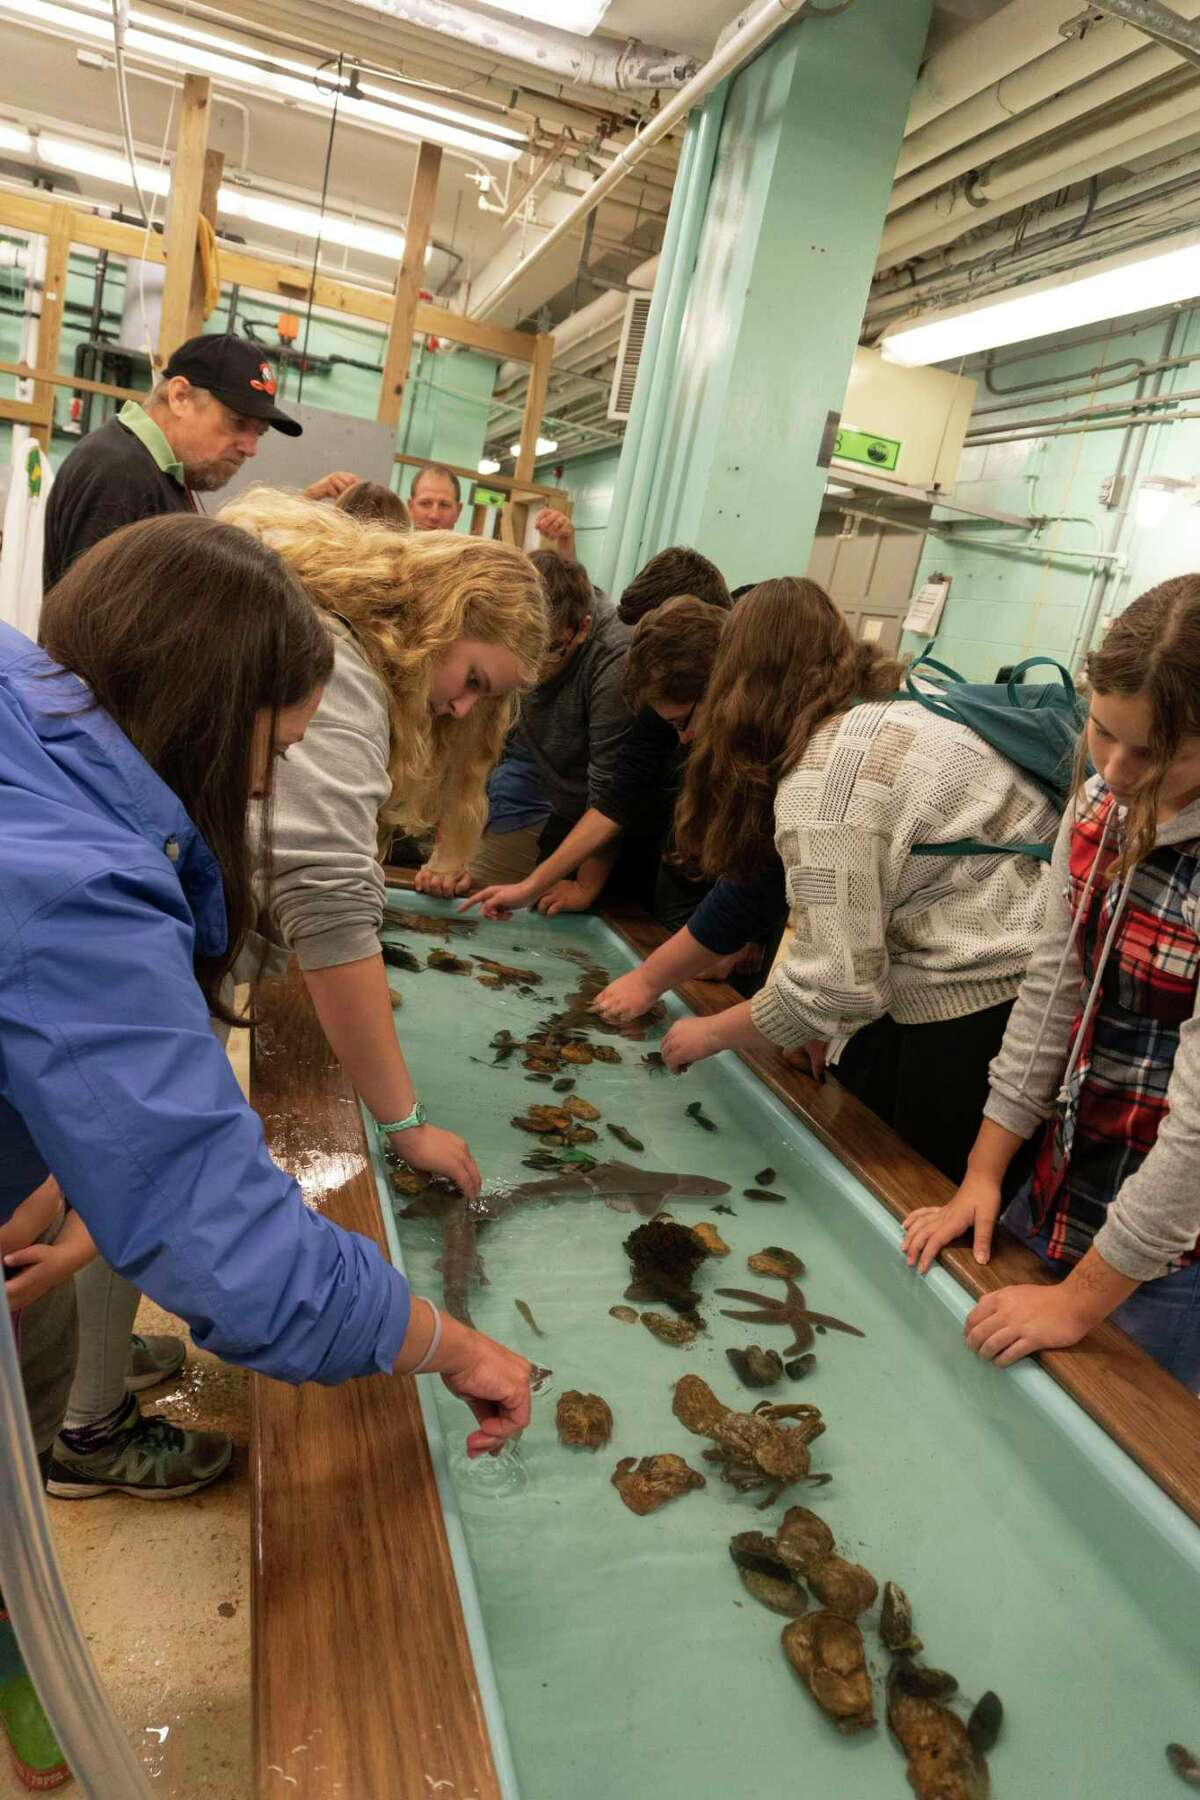 Families will have a chance to learn about shellfish and their role in the ecology of Long Island Sound at the National Oceanic and Atmospheric Administration (NOAA) Fisheries Milford Laboratory during its annual open house on Saturday, Oct. 19.